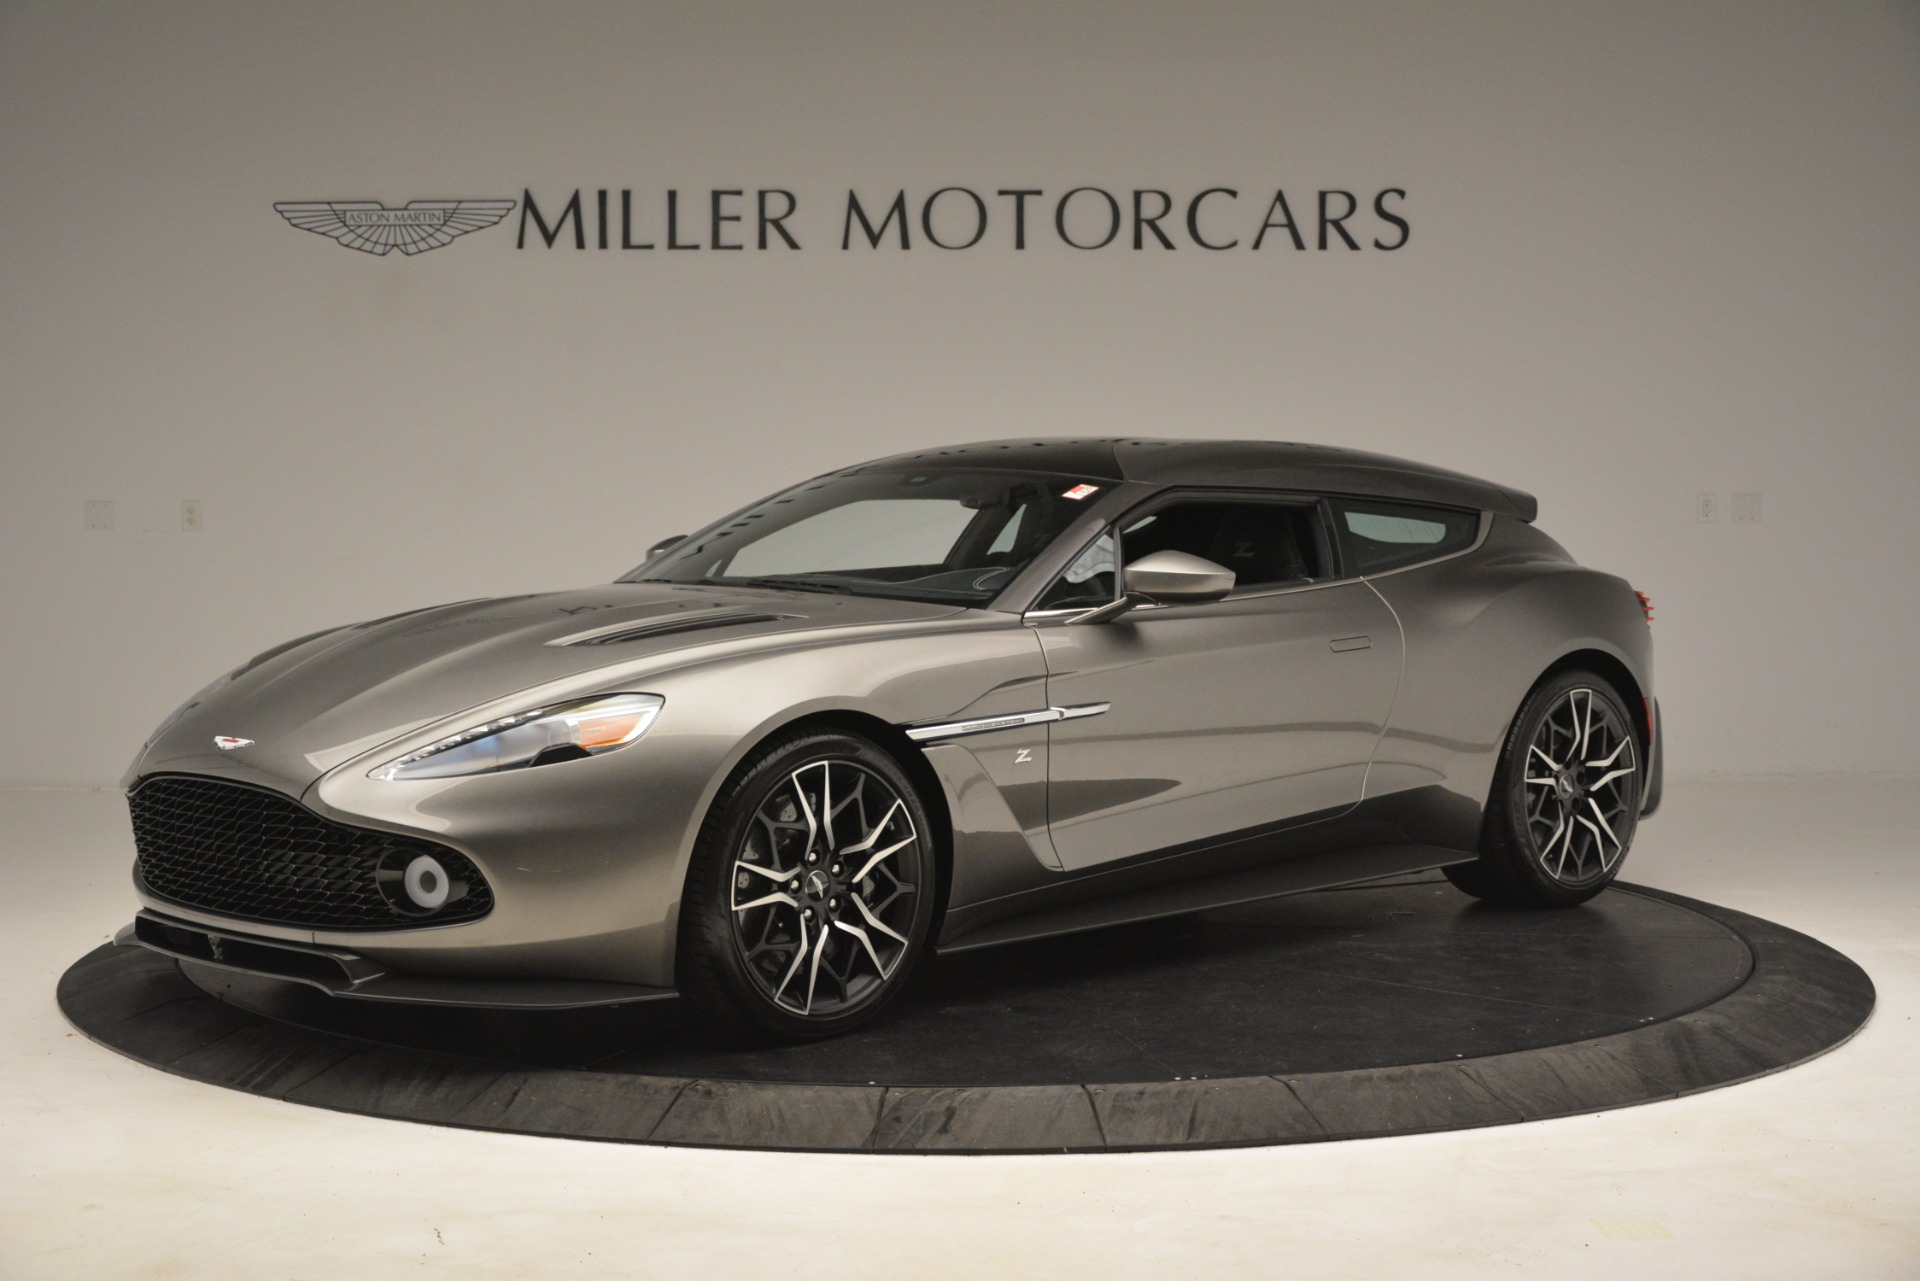 New 2019 Aston Martin Vanquish Zagato Shooting Brake for sale Sold at Alfa Romeo of Greenwich in Greenwich CT 06830 1